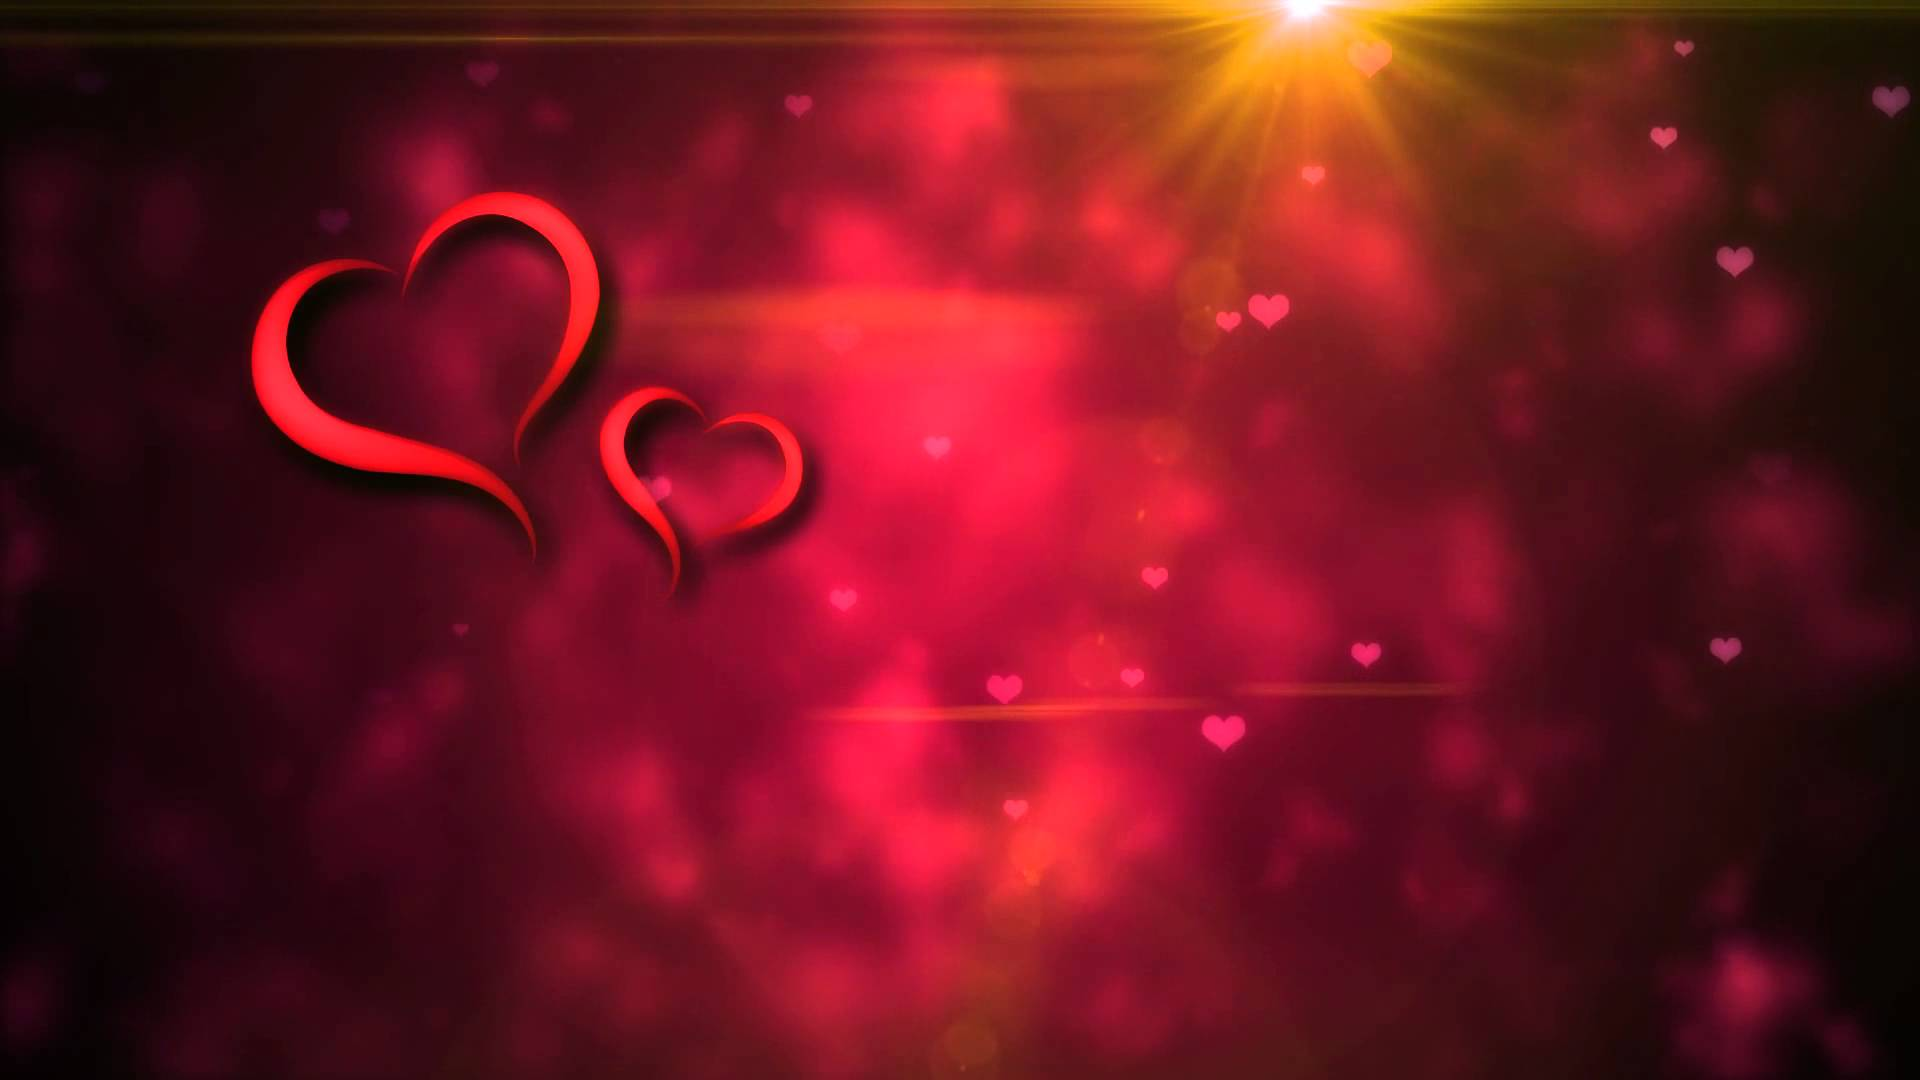 No Love Hd Wallpaper : Hd Wedding Backgrounds - WallpaperSafari